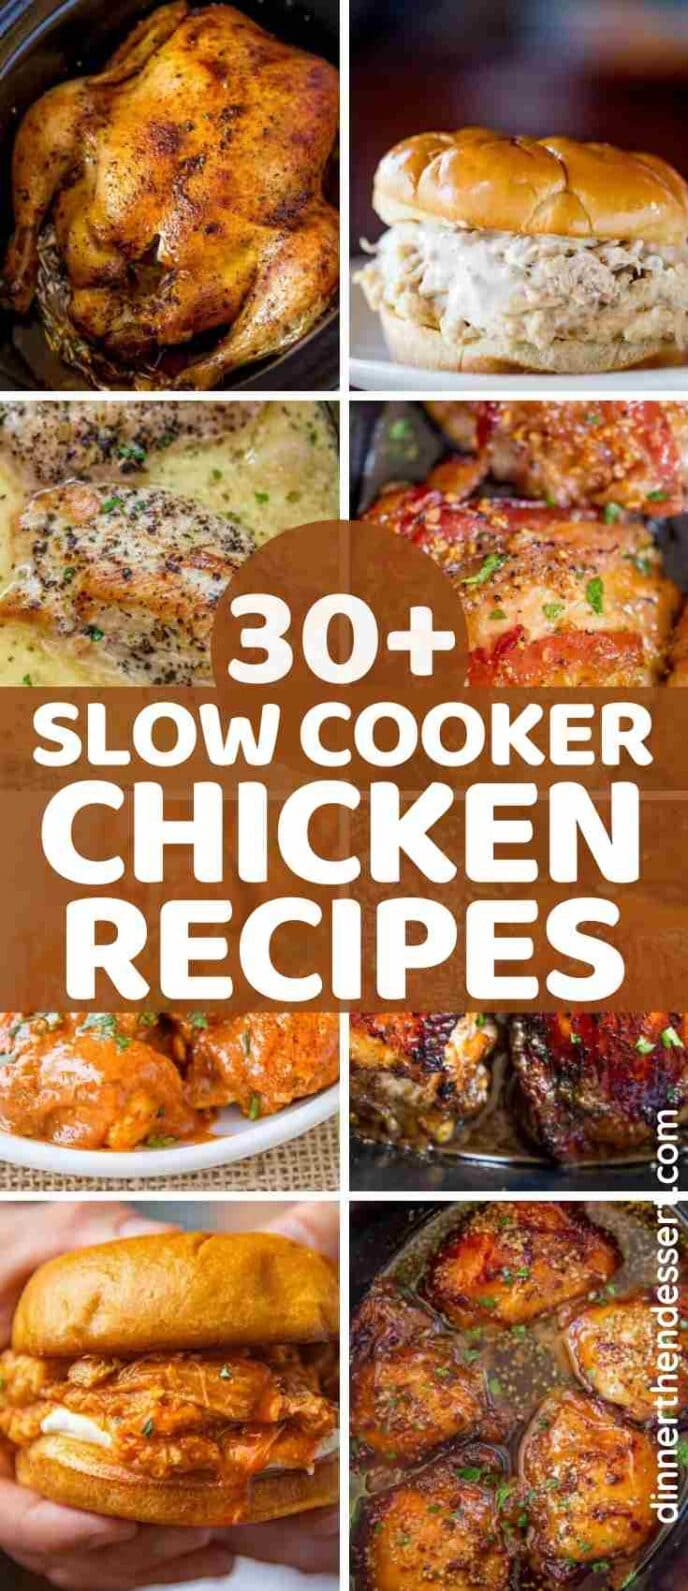 Large collage of slow cooker chicken recipes with title